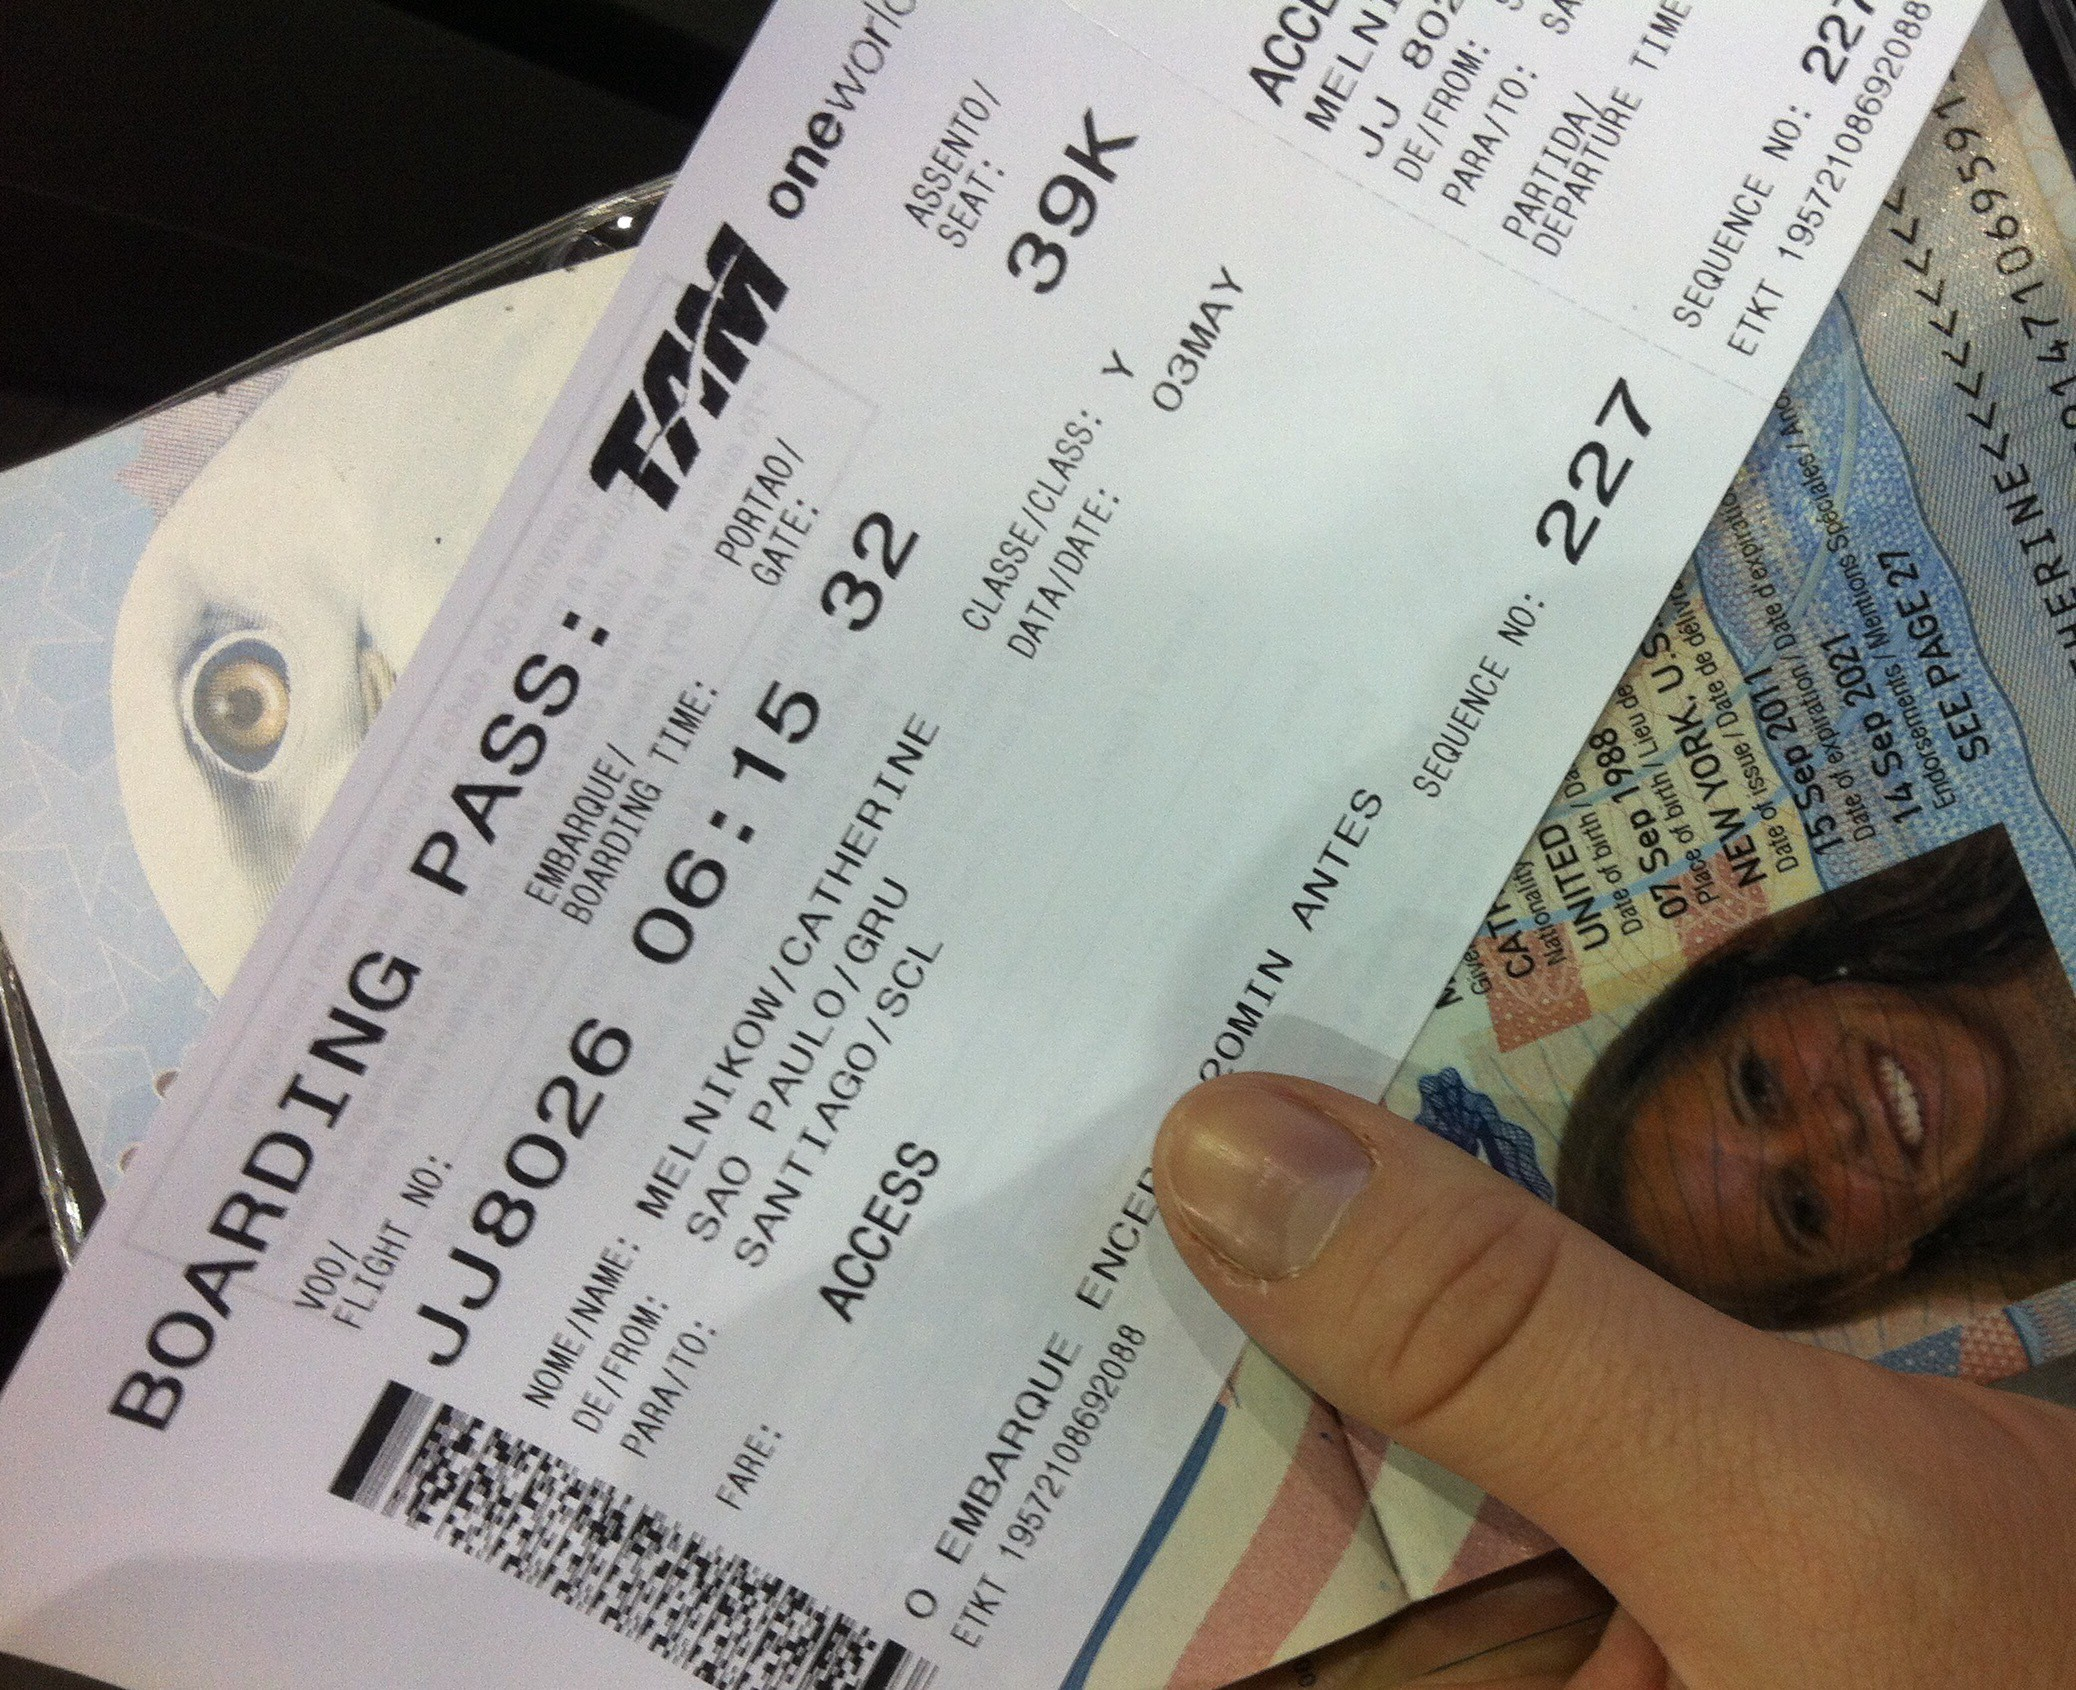 A ticket and passport held in hand